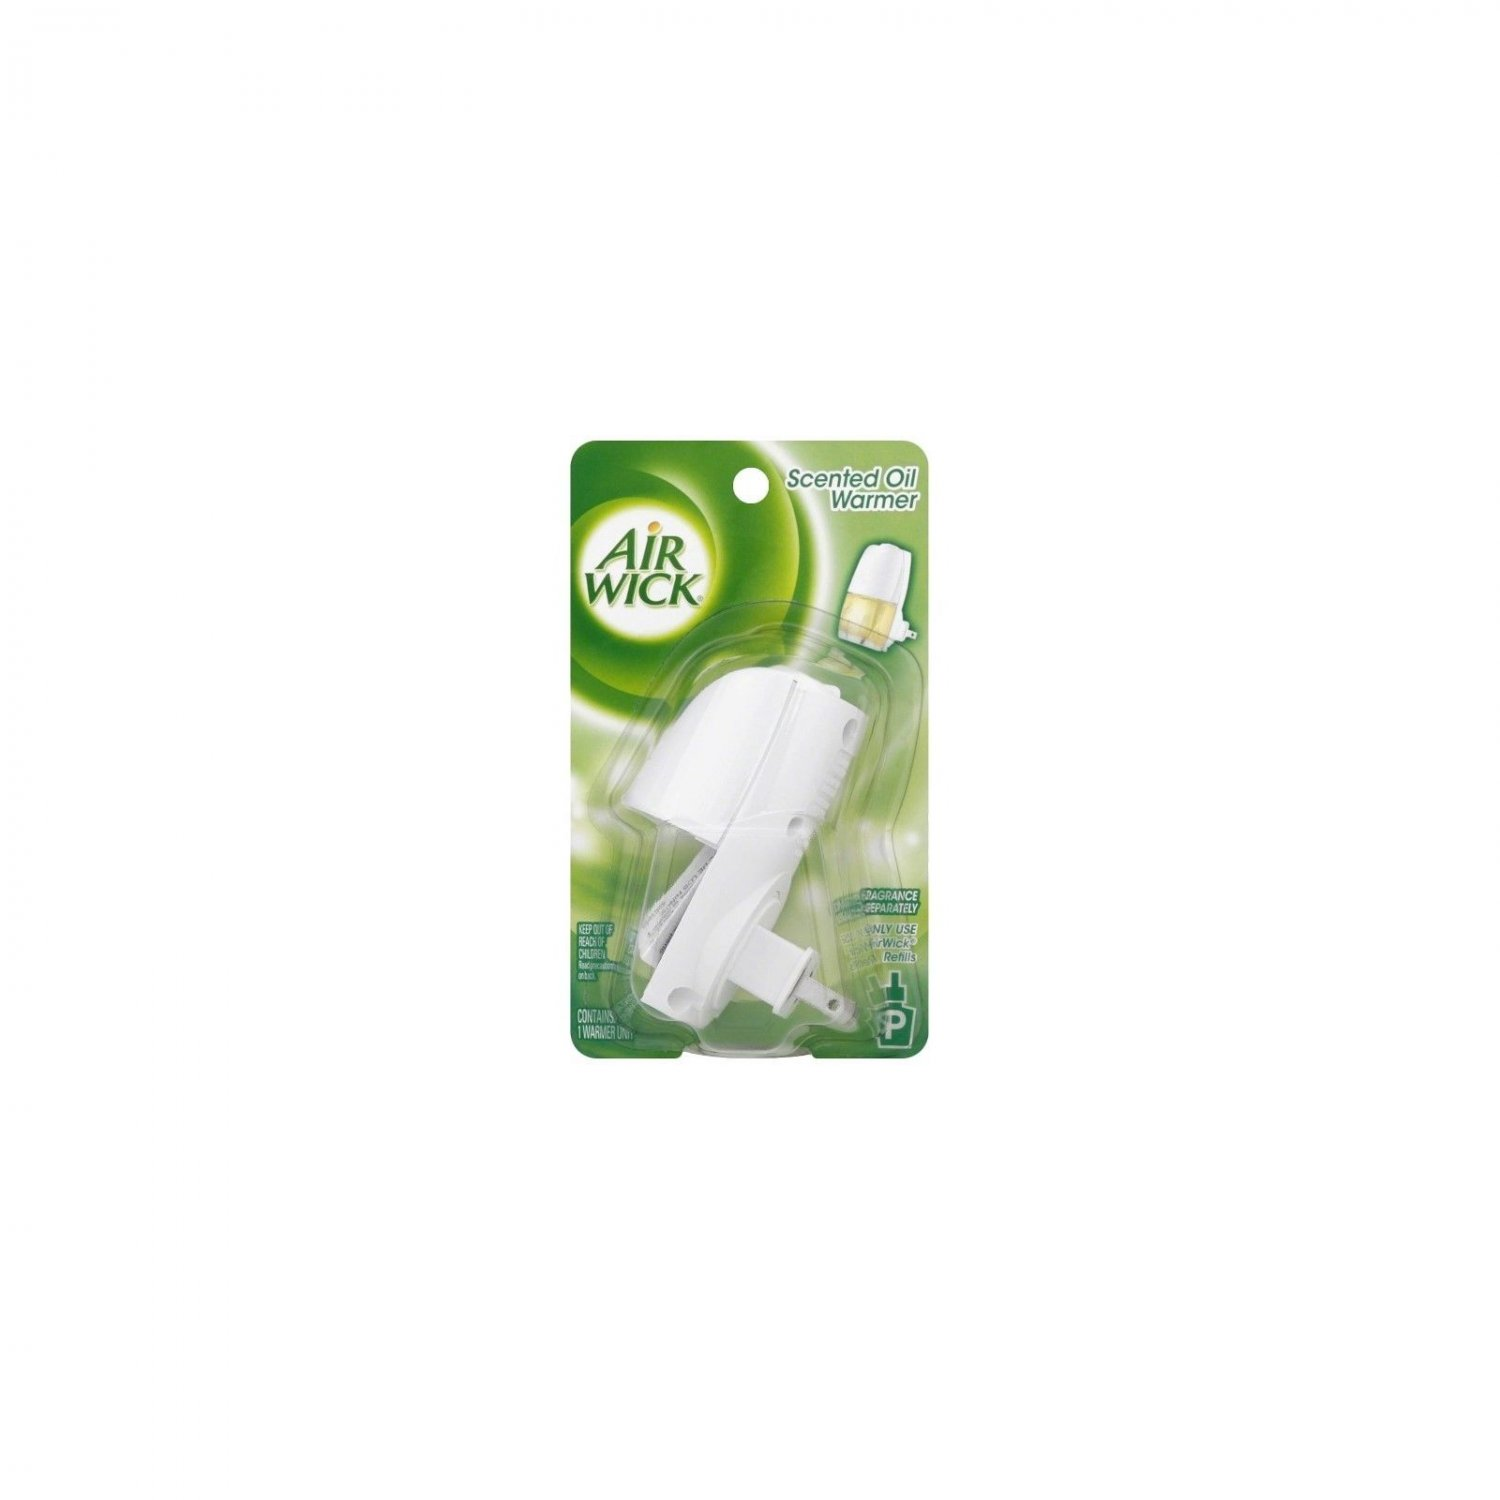 Air Wick Scented Oil Air Freshener Warmer, 1 Count